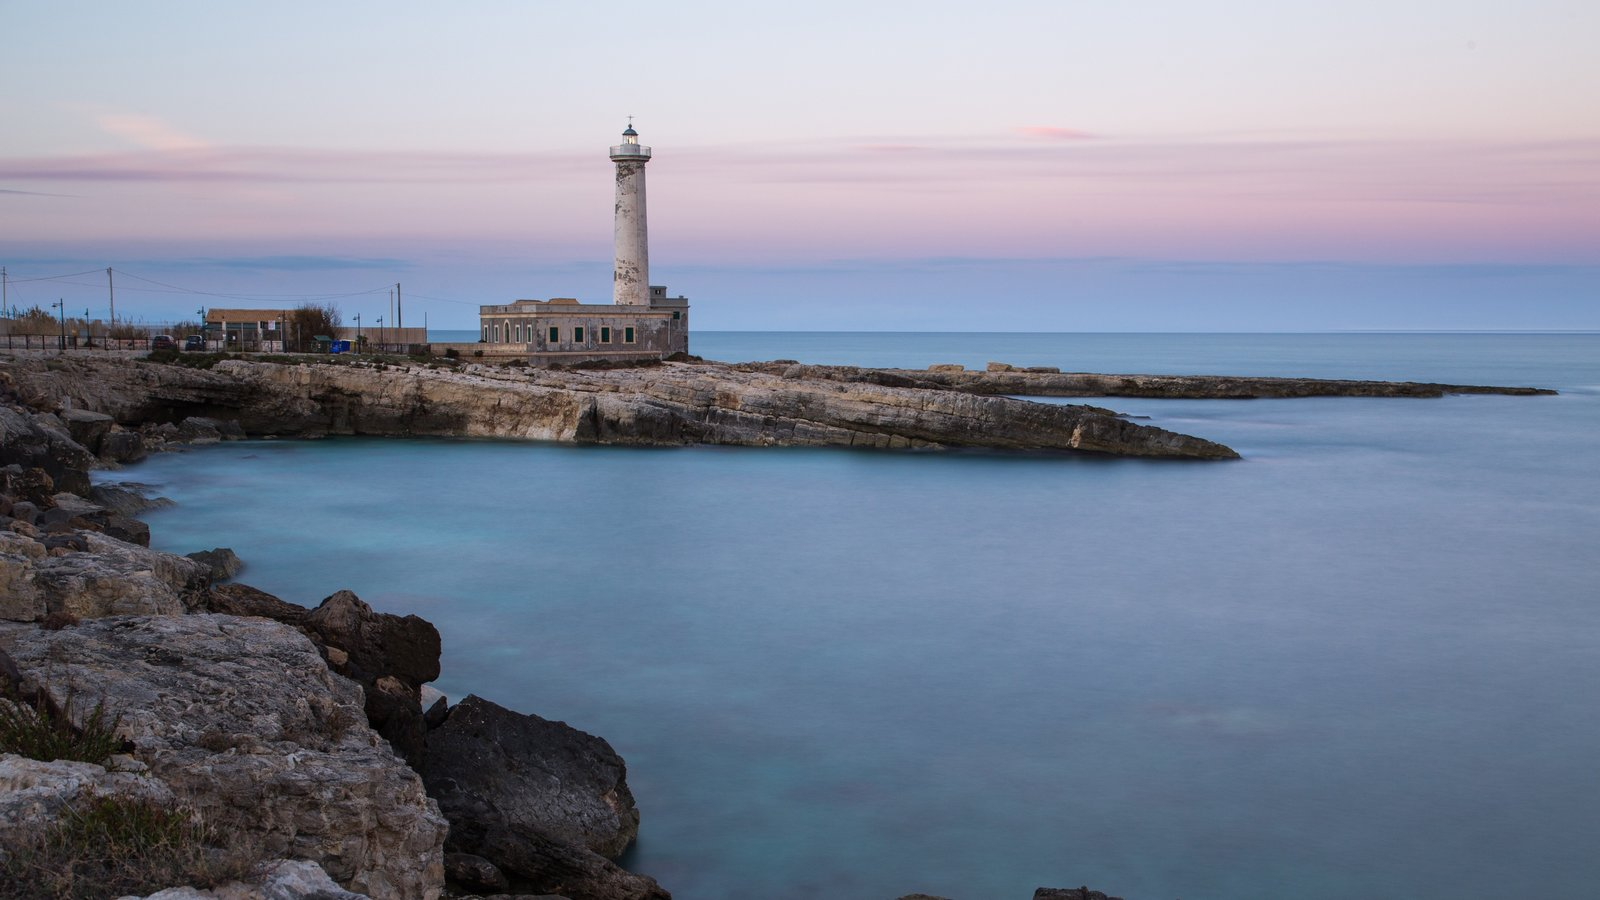 Augusta which includes a lighthouse, a sunset and rugged coastline